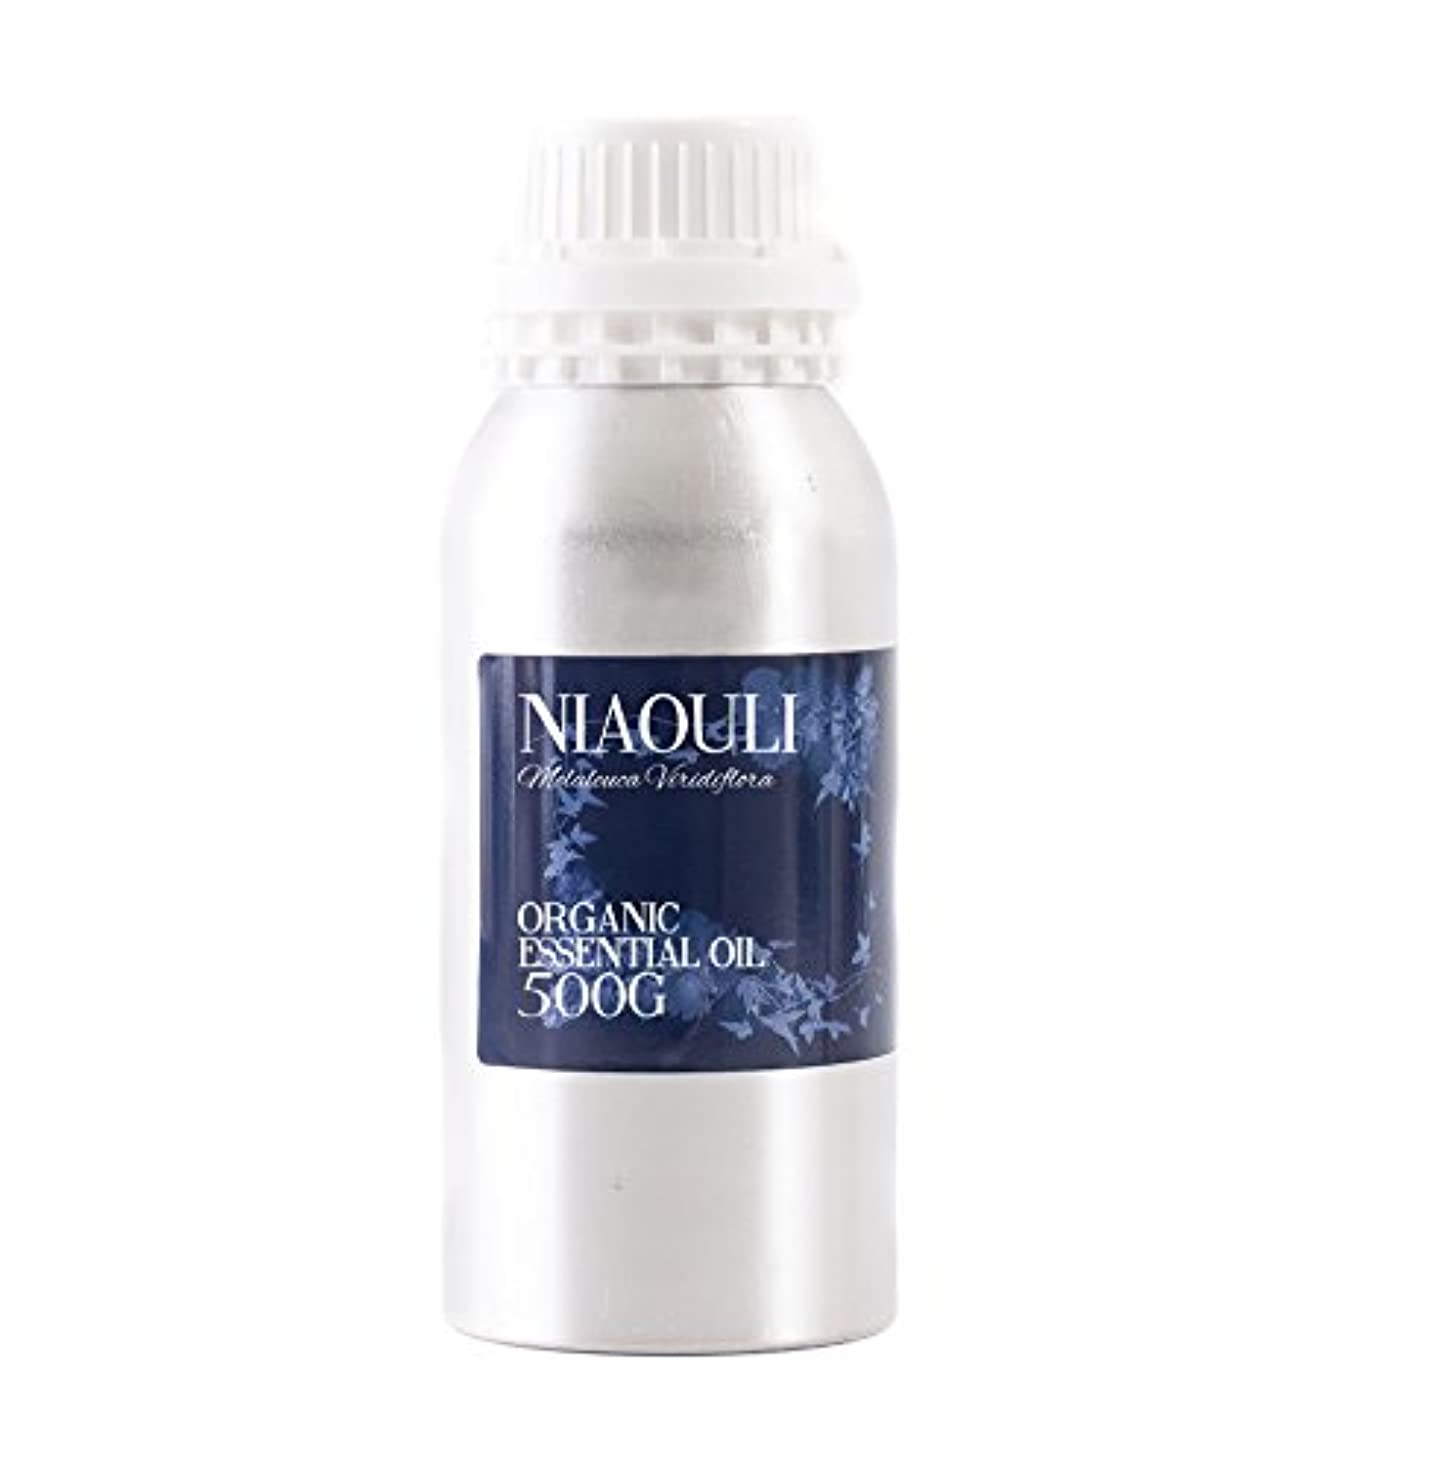 スプレーエイリアス船乗りMystic Moments | Niaouli Organic Essential Oil - 500g - 100% Pure